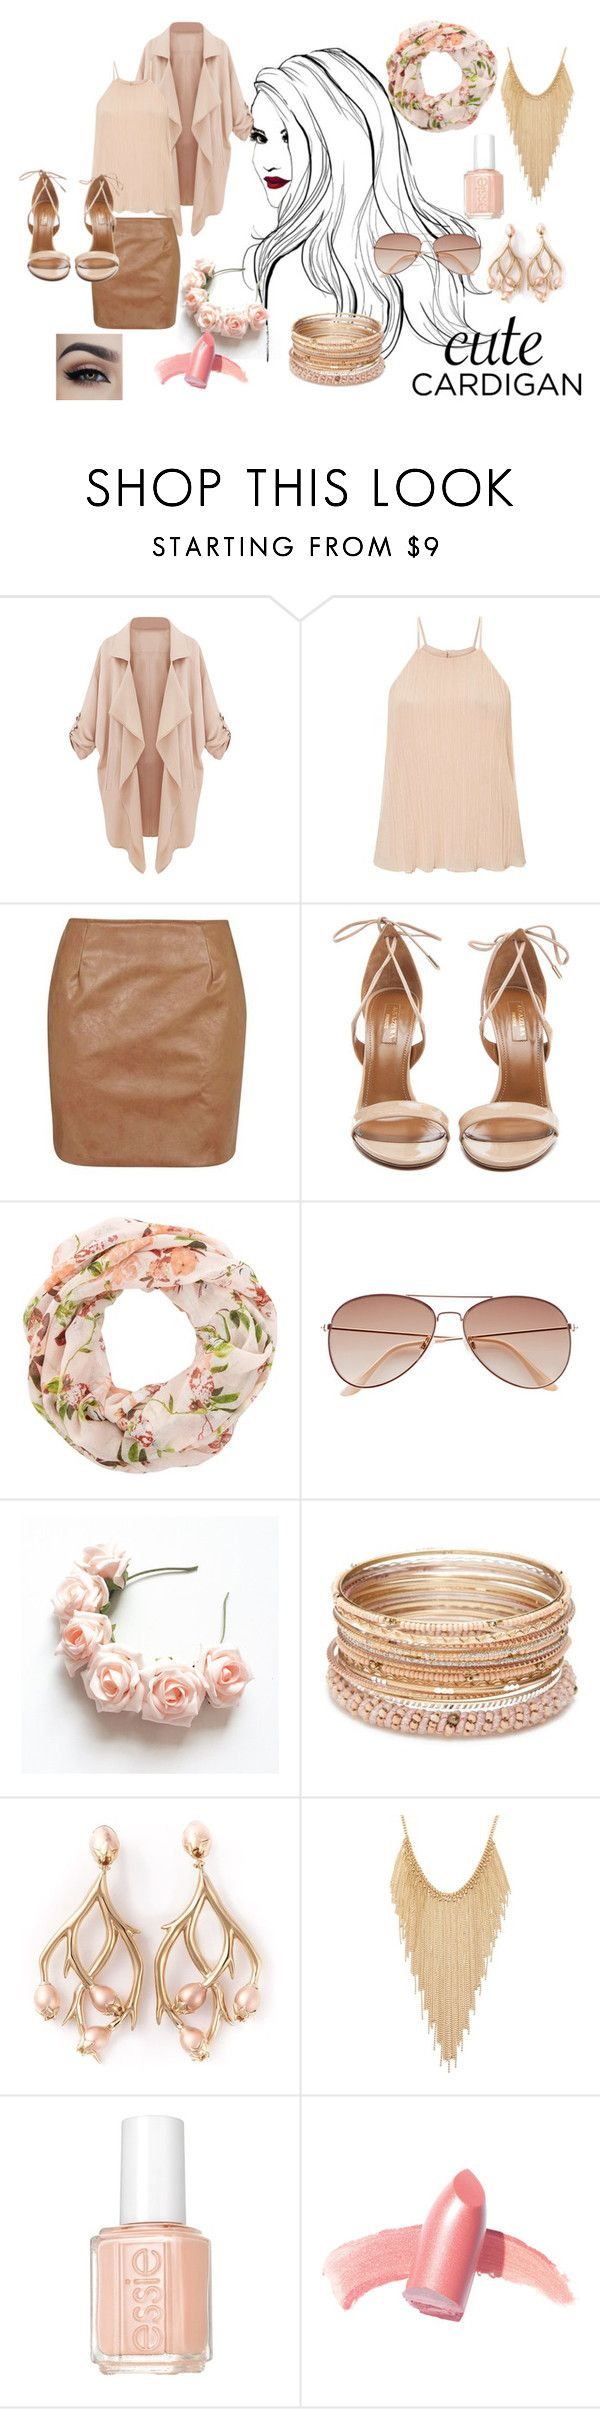 """""""Spring Cardigan Fashion"""" by abbi-alister ❤ liked on Polyvore featuring Miss Selfridge, Topshop, Aquazzura, New Look, H&M, Red Camel, Shaun Leane, Forever 21, Essie and Elizabeth Arden"""